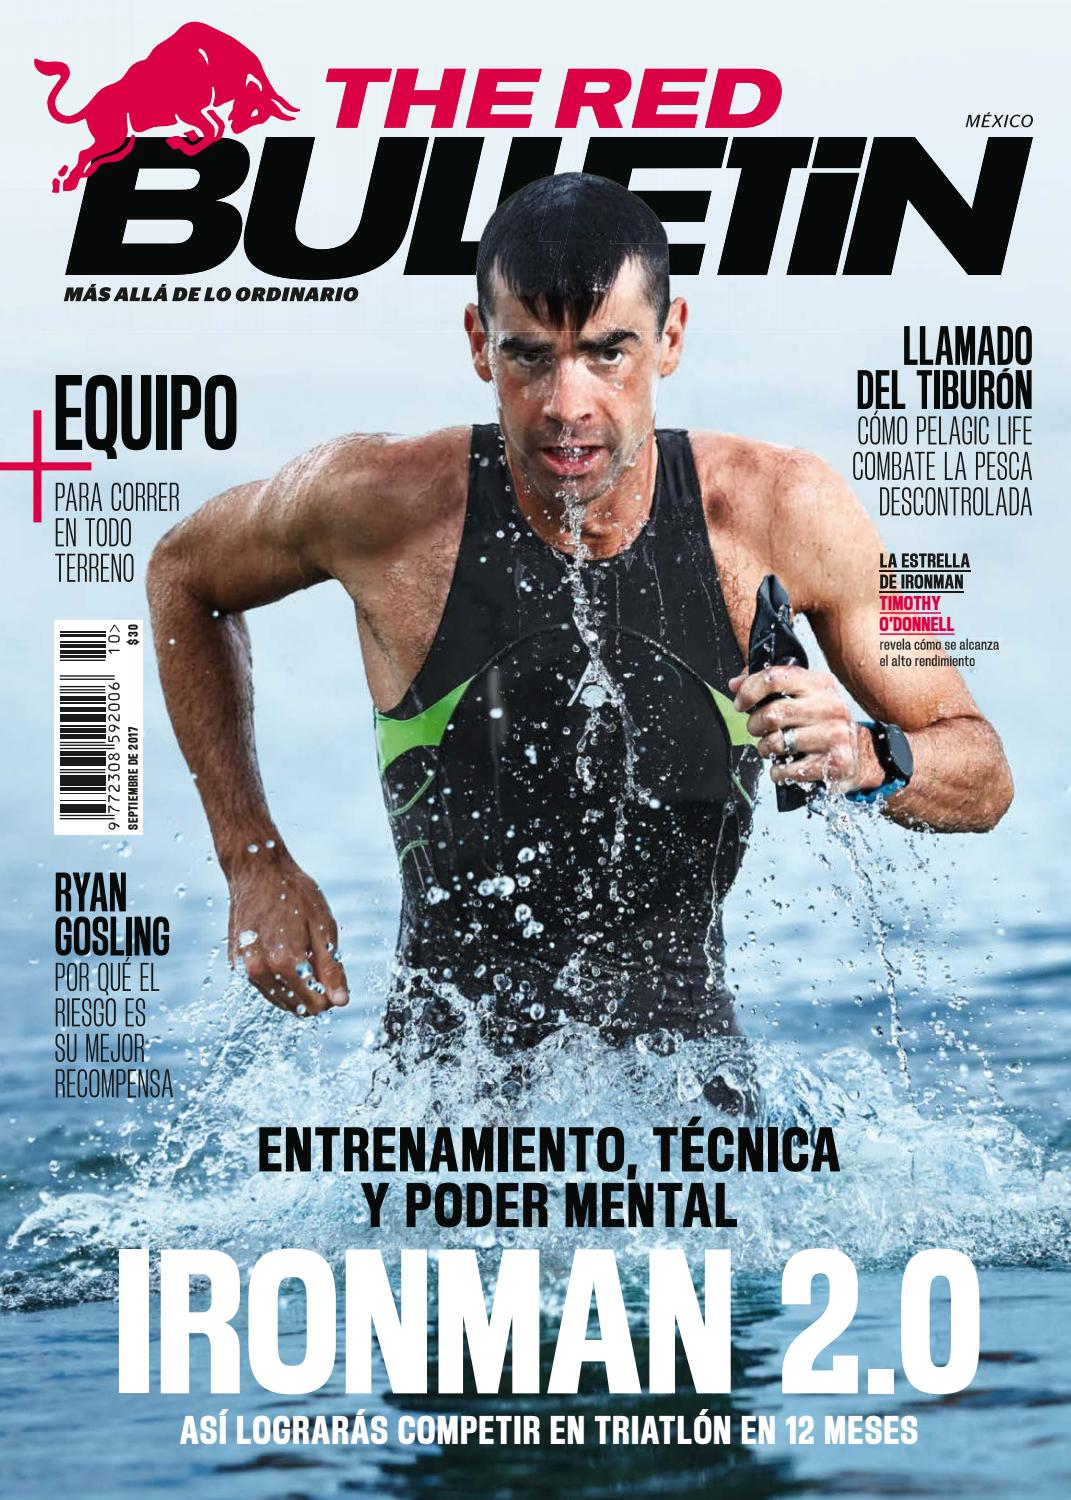 c7dbc7cd3 The Red Bulletin Octubre 2017 - MX by Red Bull Media House - issuu